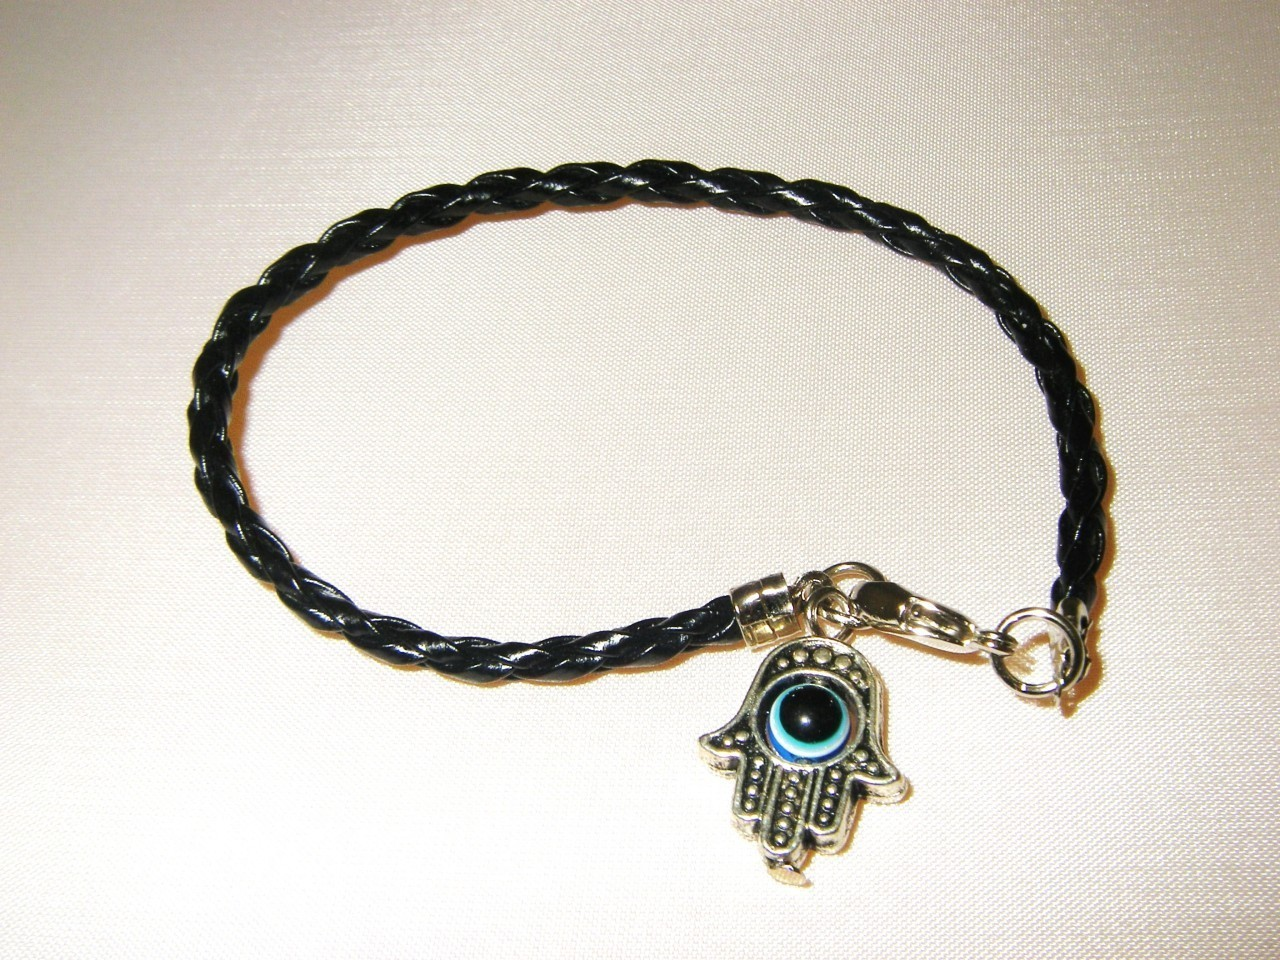 LUCKY EYE HAMSA CHARM BRACELET BLACK BRAIDED STRING 6.5""